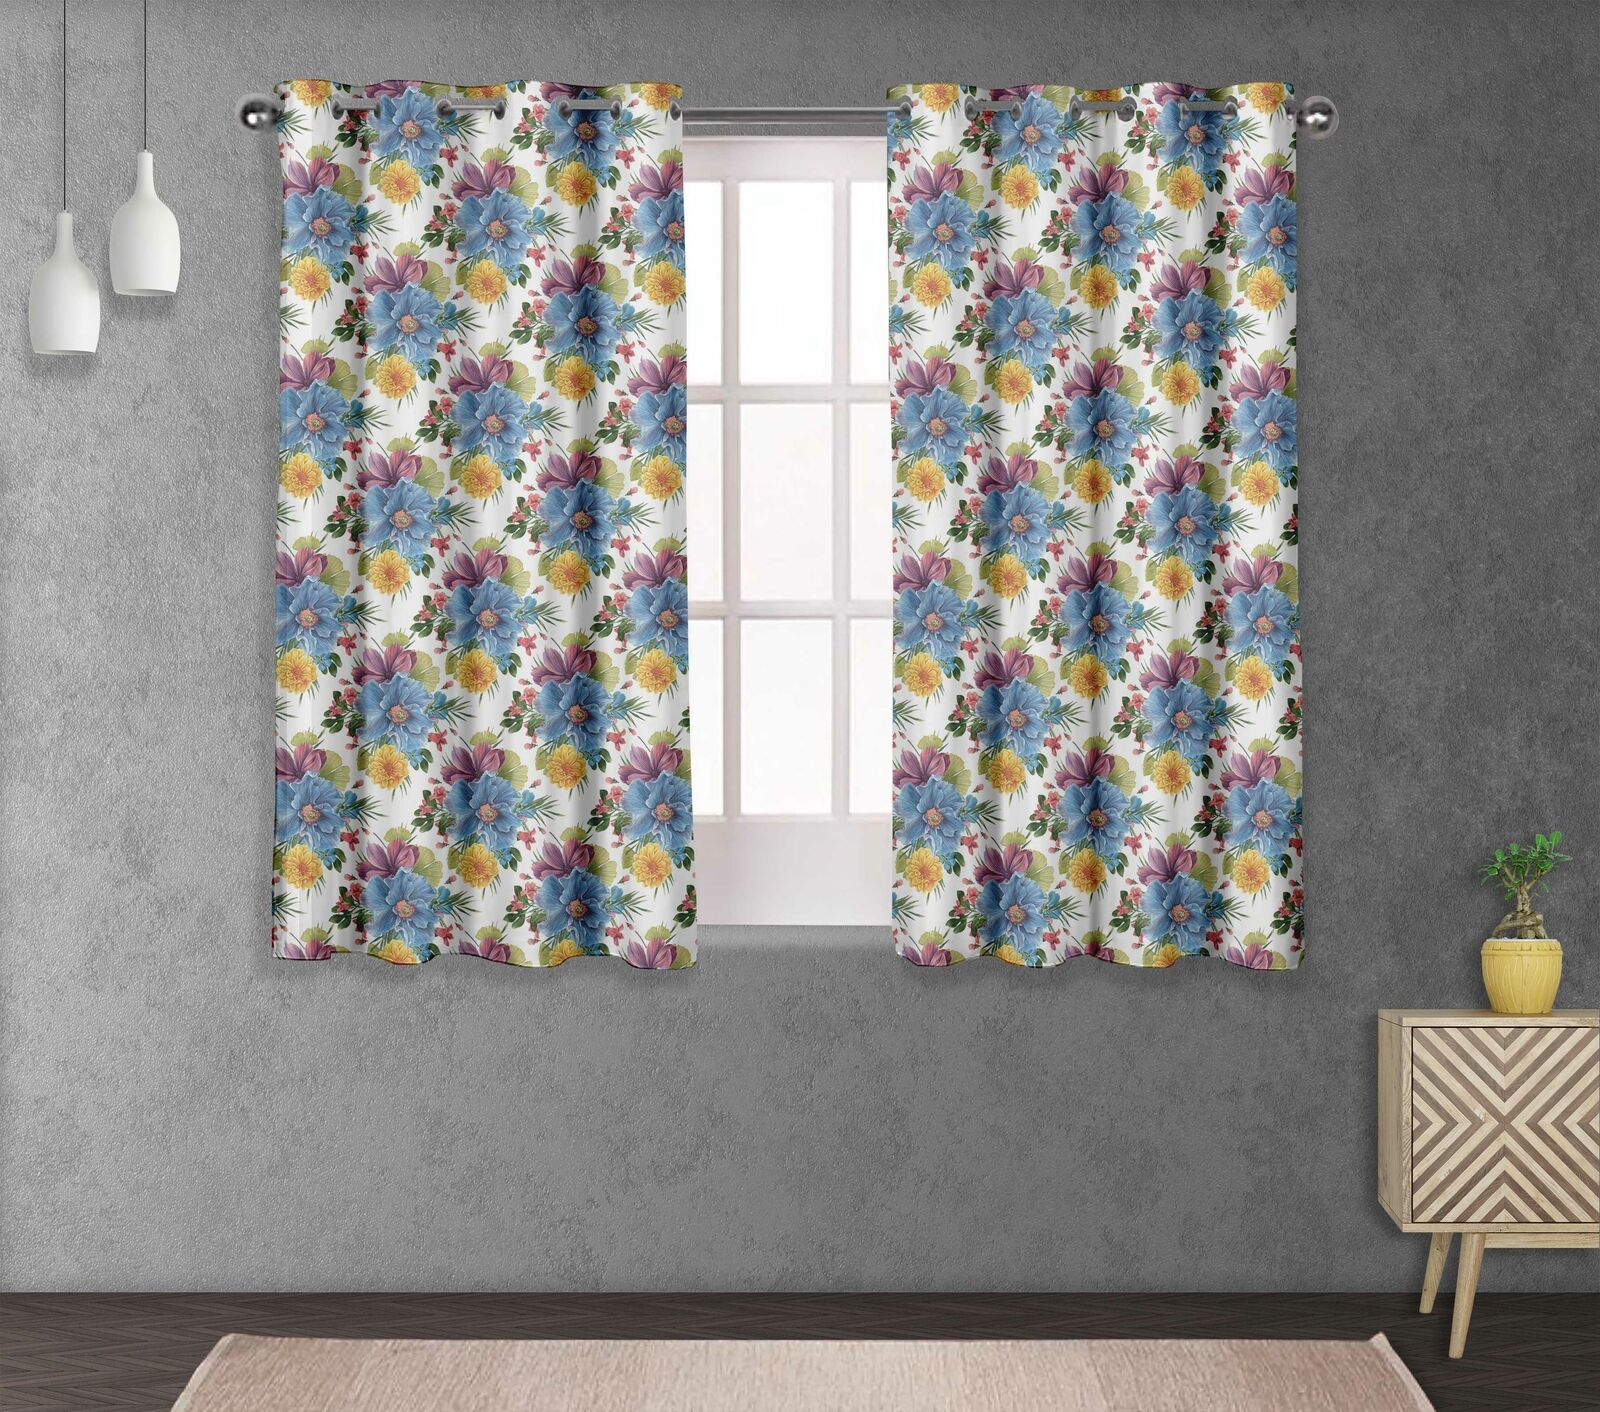 S4sassy Peony & chrysanthemum Double Panel Window Treatment Curtain -FL-831J